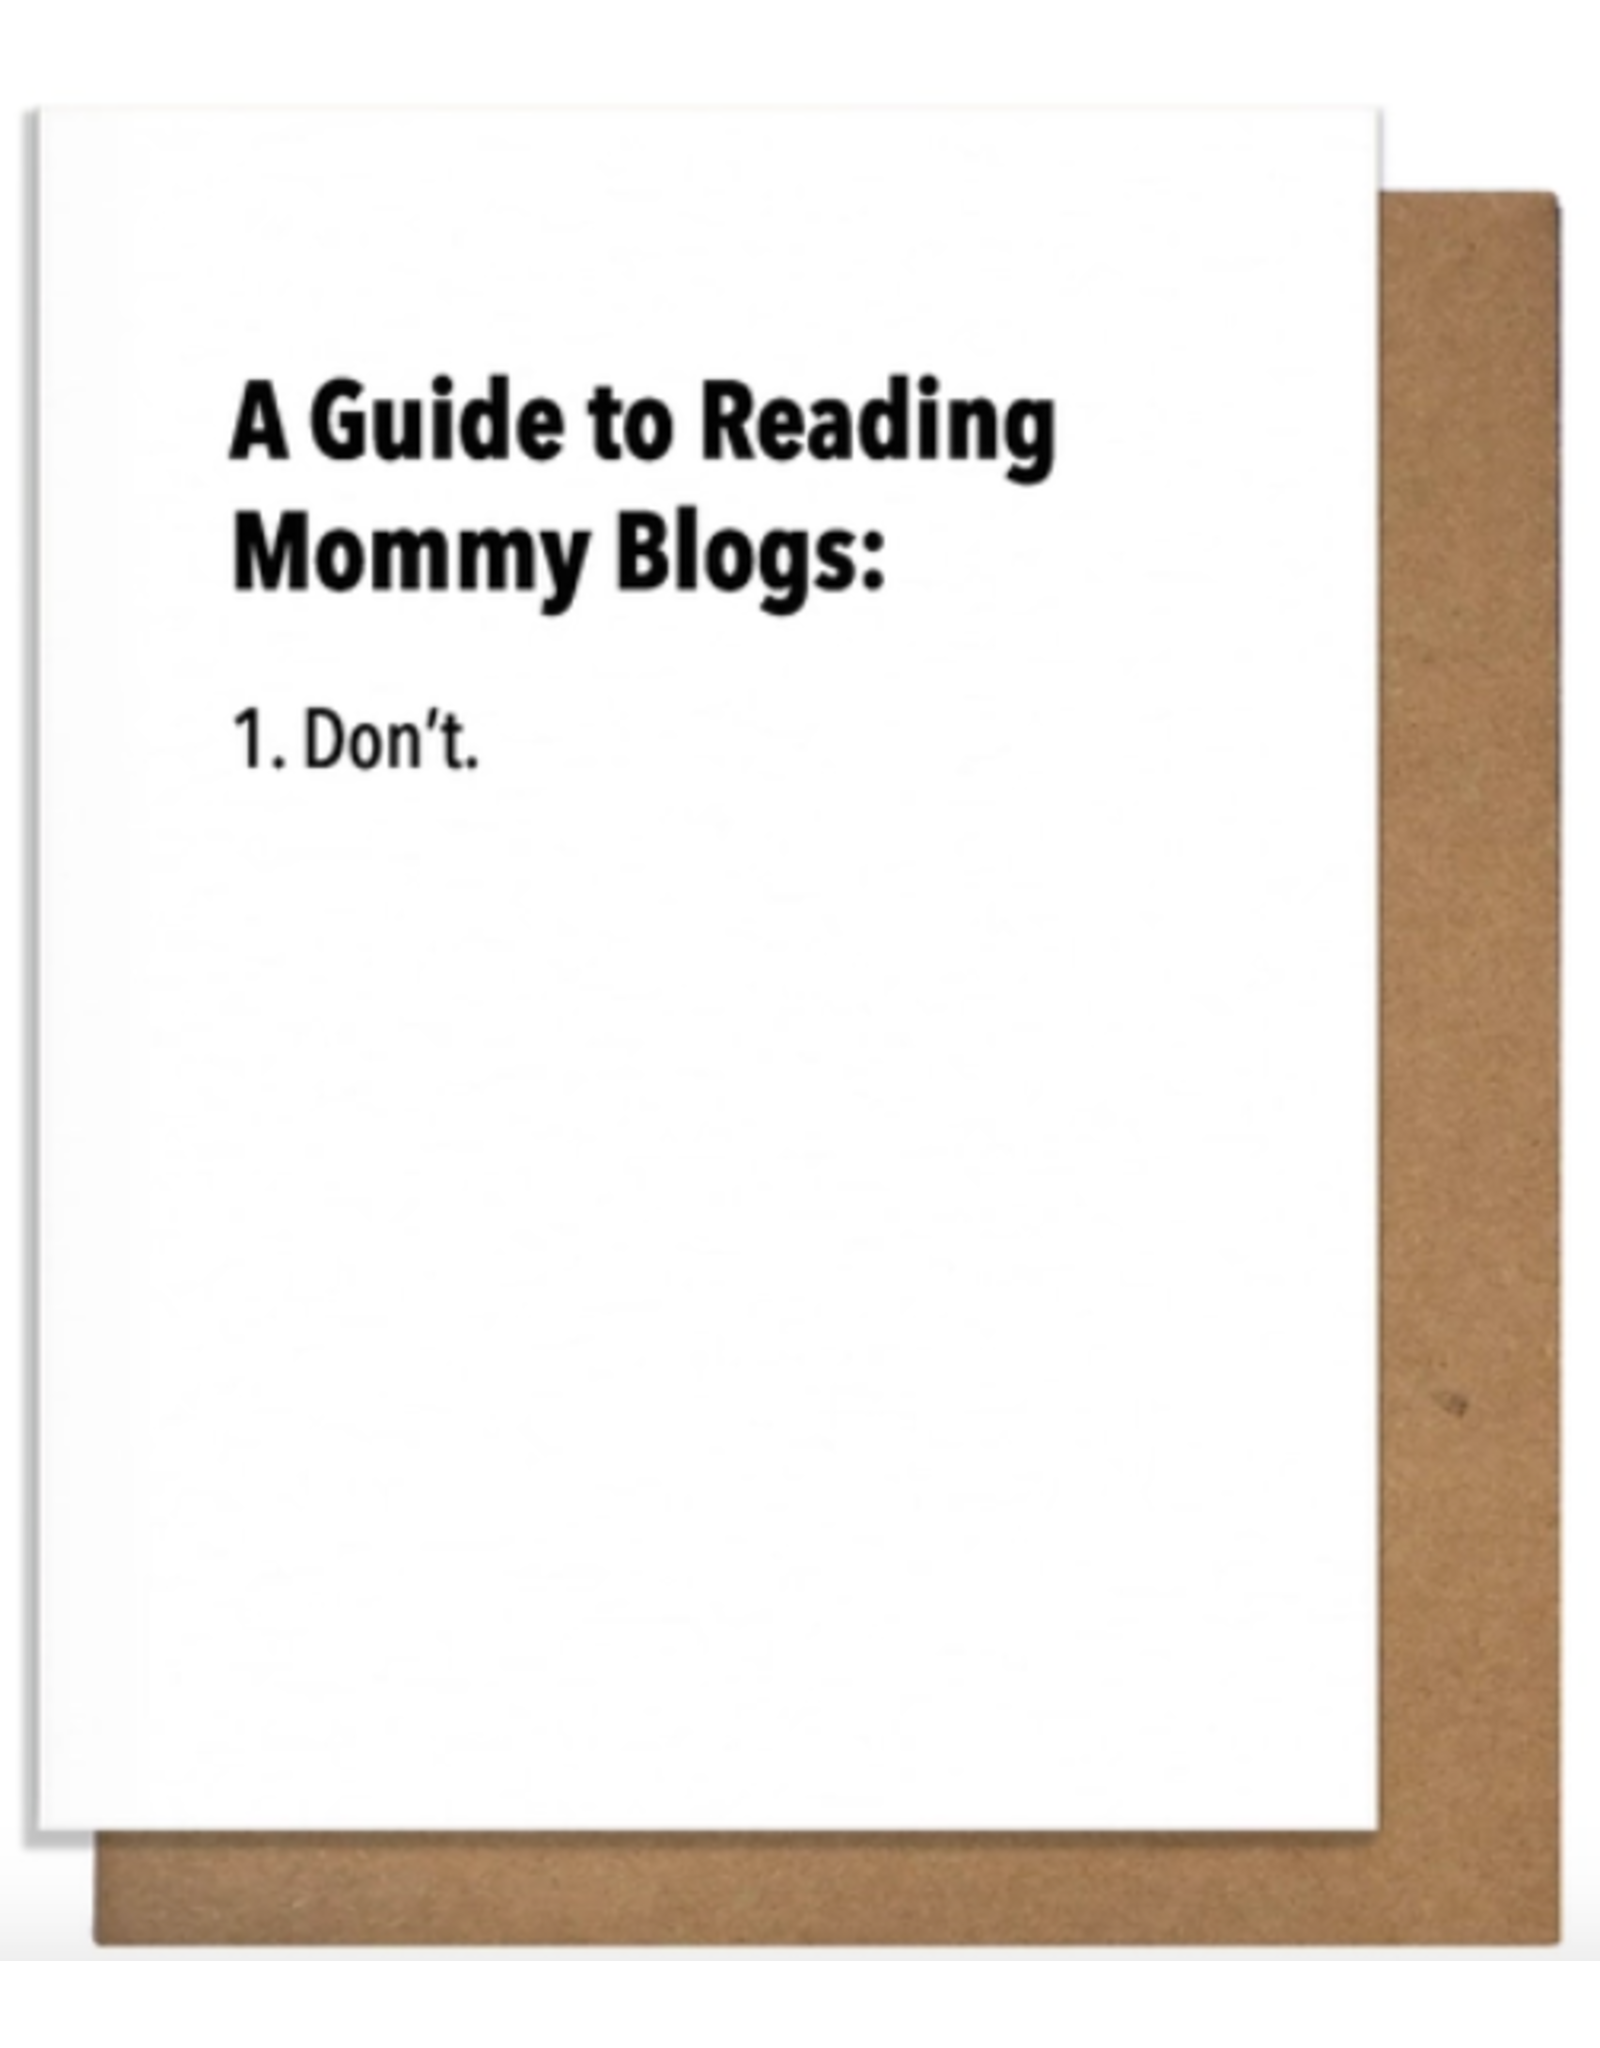 Pretty Alright Goods Mommy Blogs Card